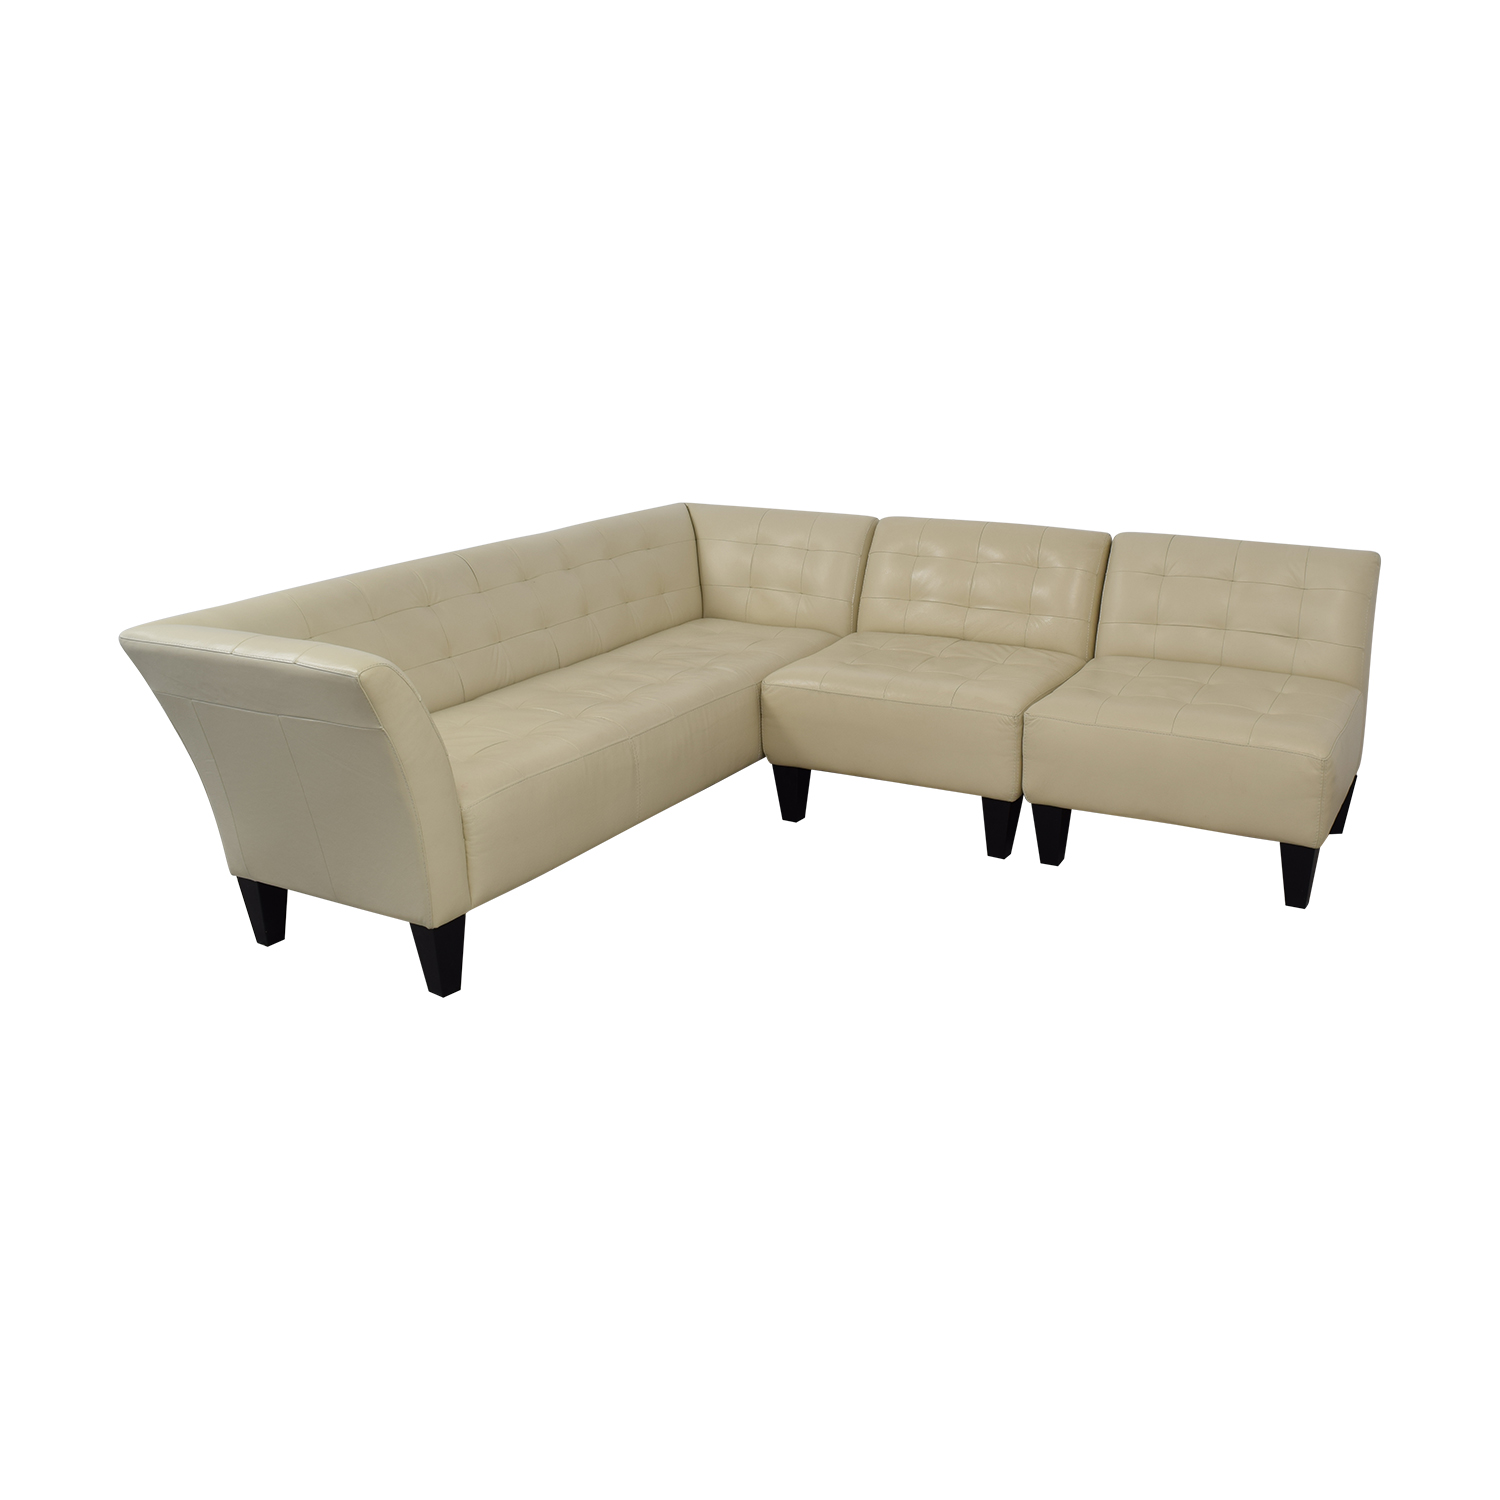 Chateau d'Ax Chateau d'Ax White Faux Leather Sectional Sofa used